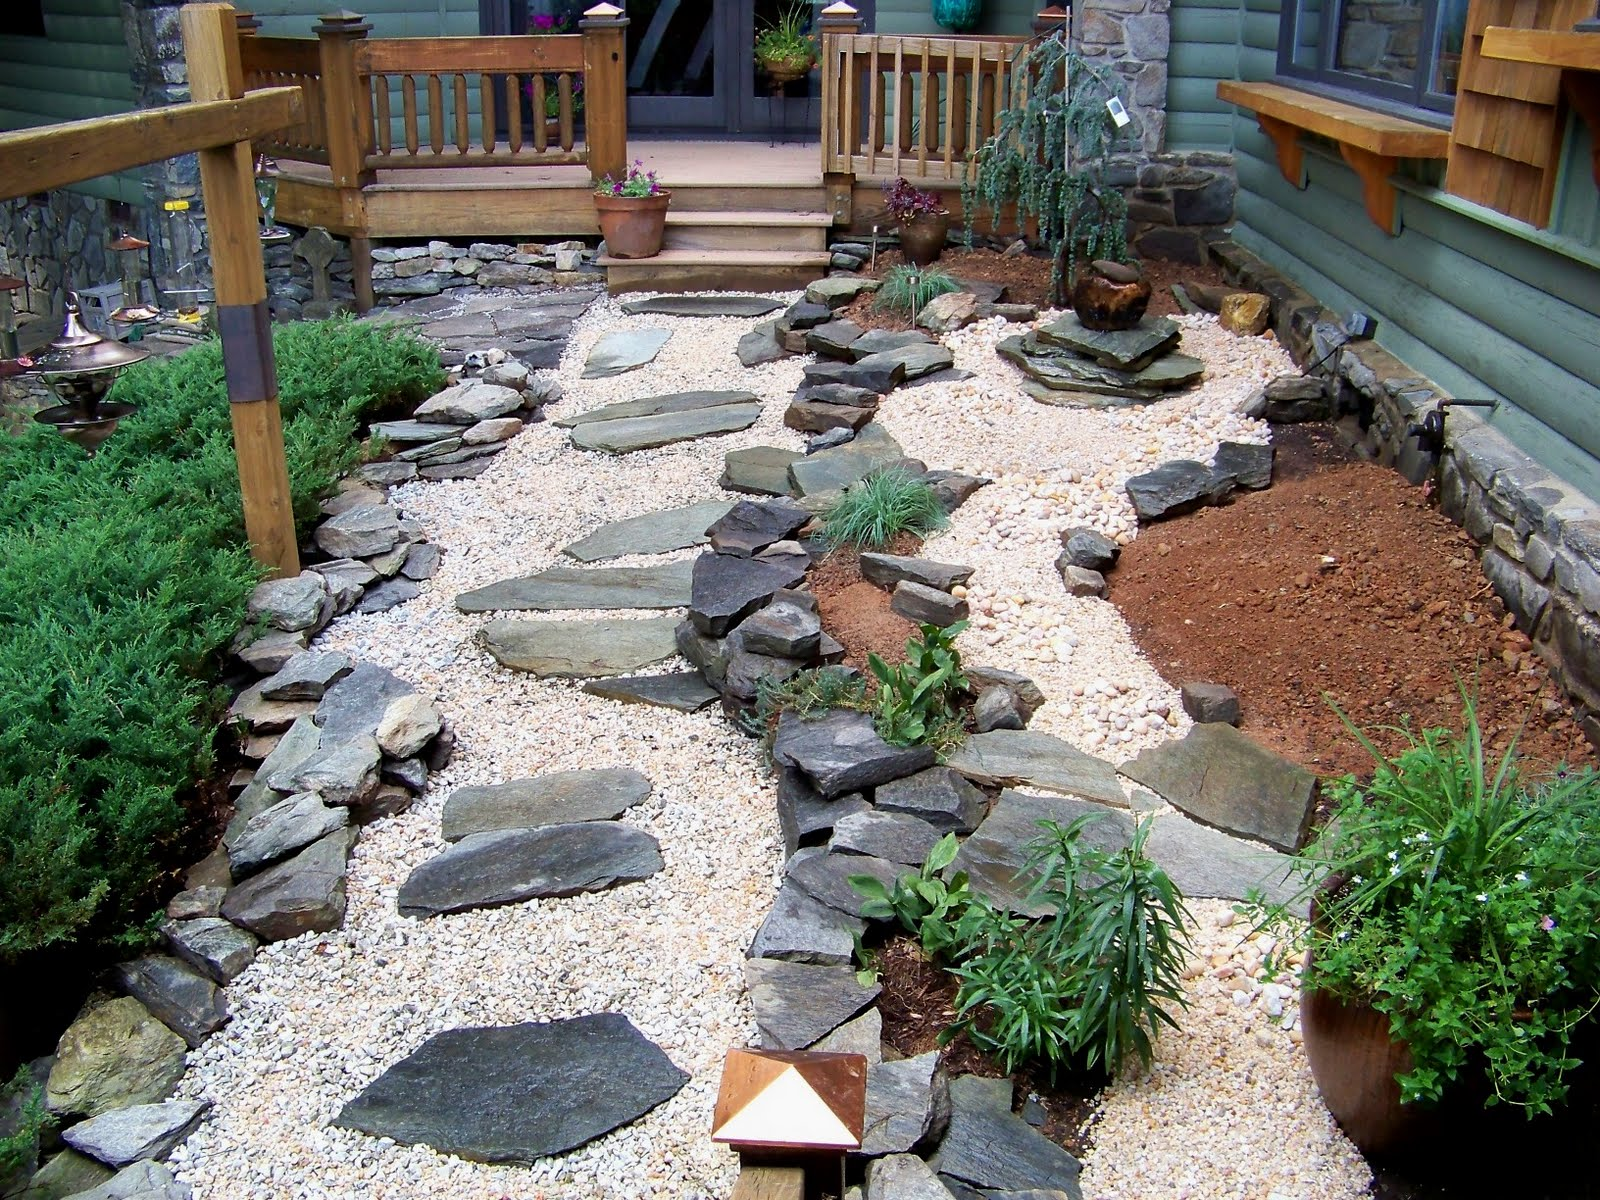 Brilliant Japanese Garden Design with Nice Steeping side Fresh Plant